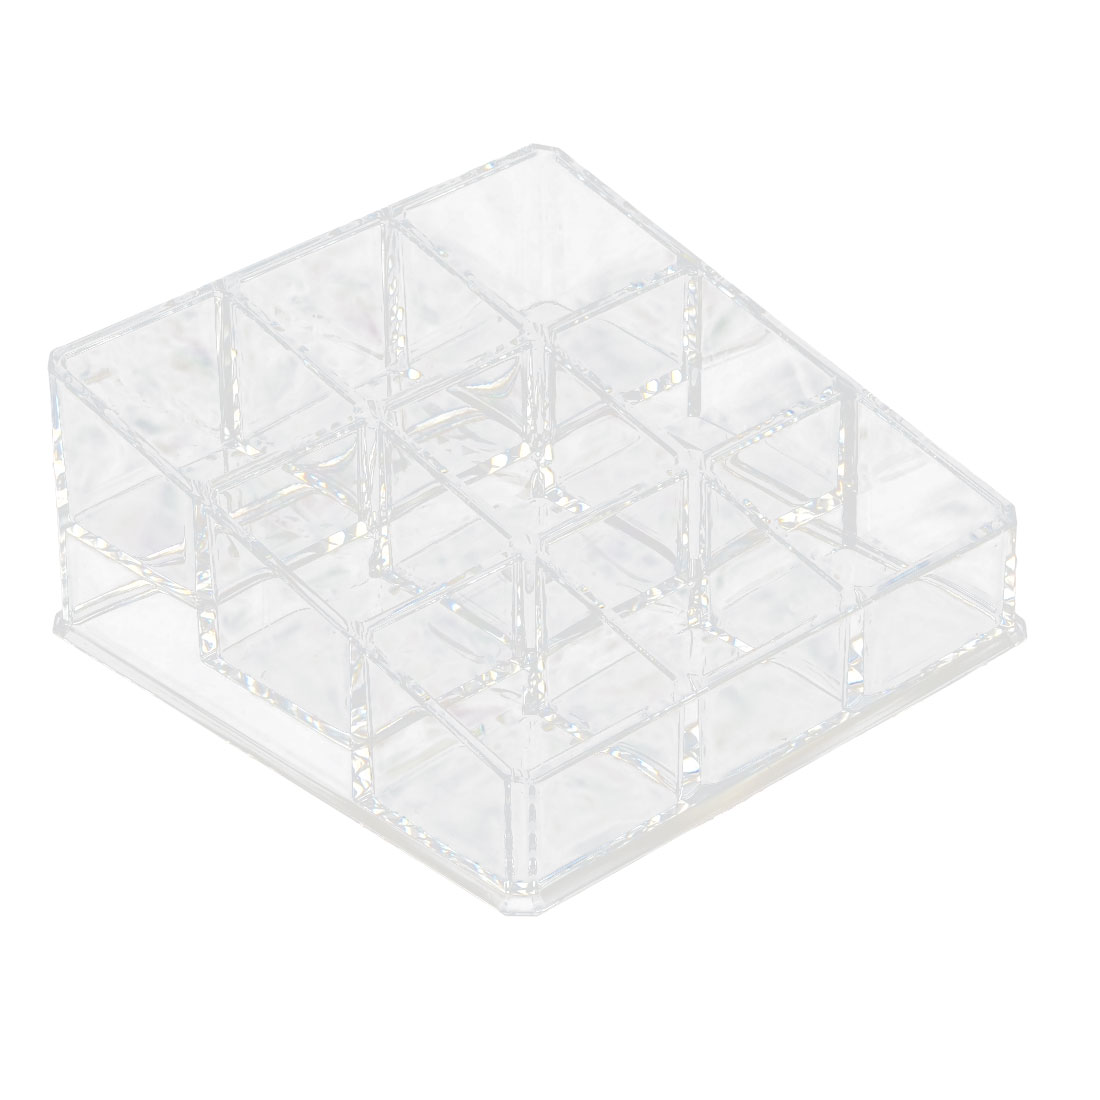 Home Acrylic Square Shaped 9 Slots Jewelry Makeup Storage Box Organizer Clear